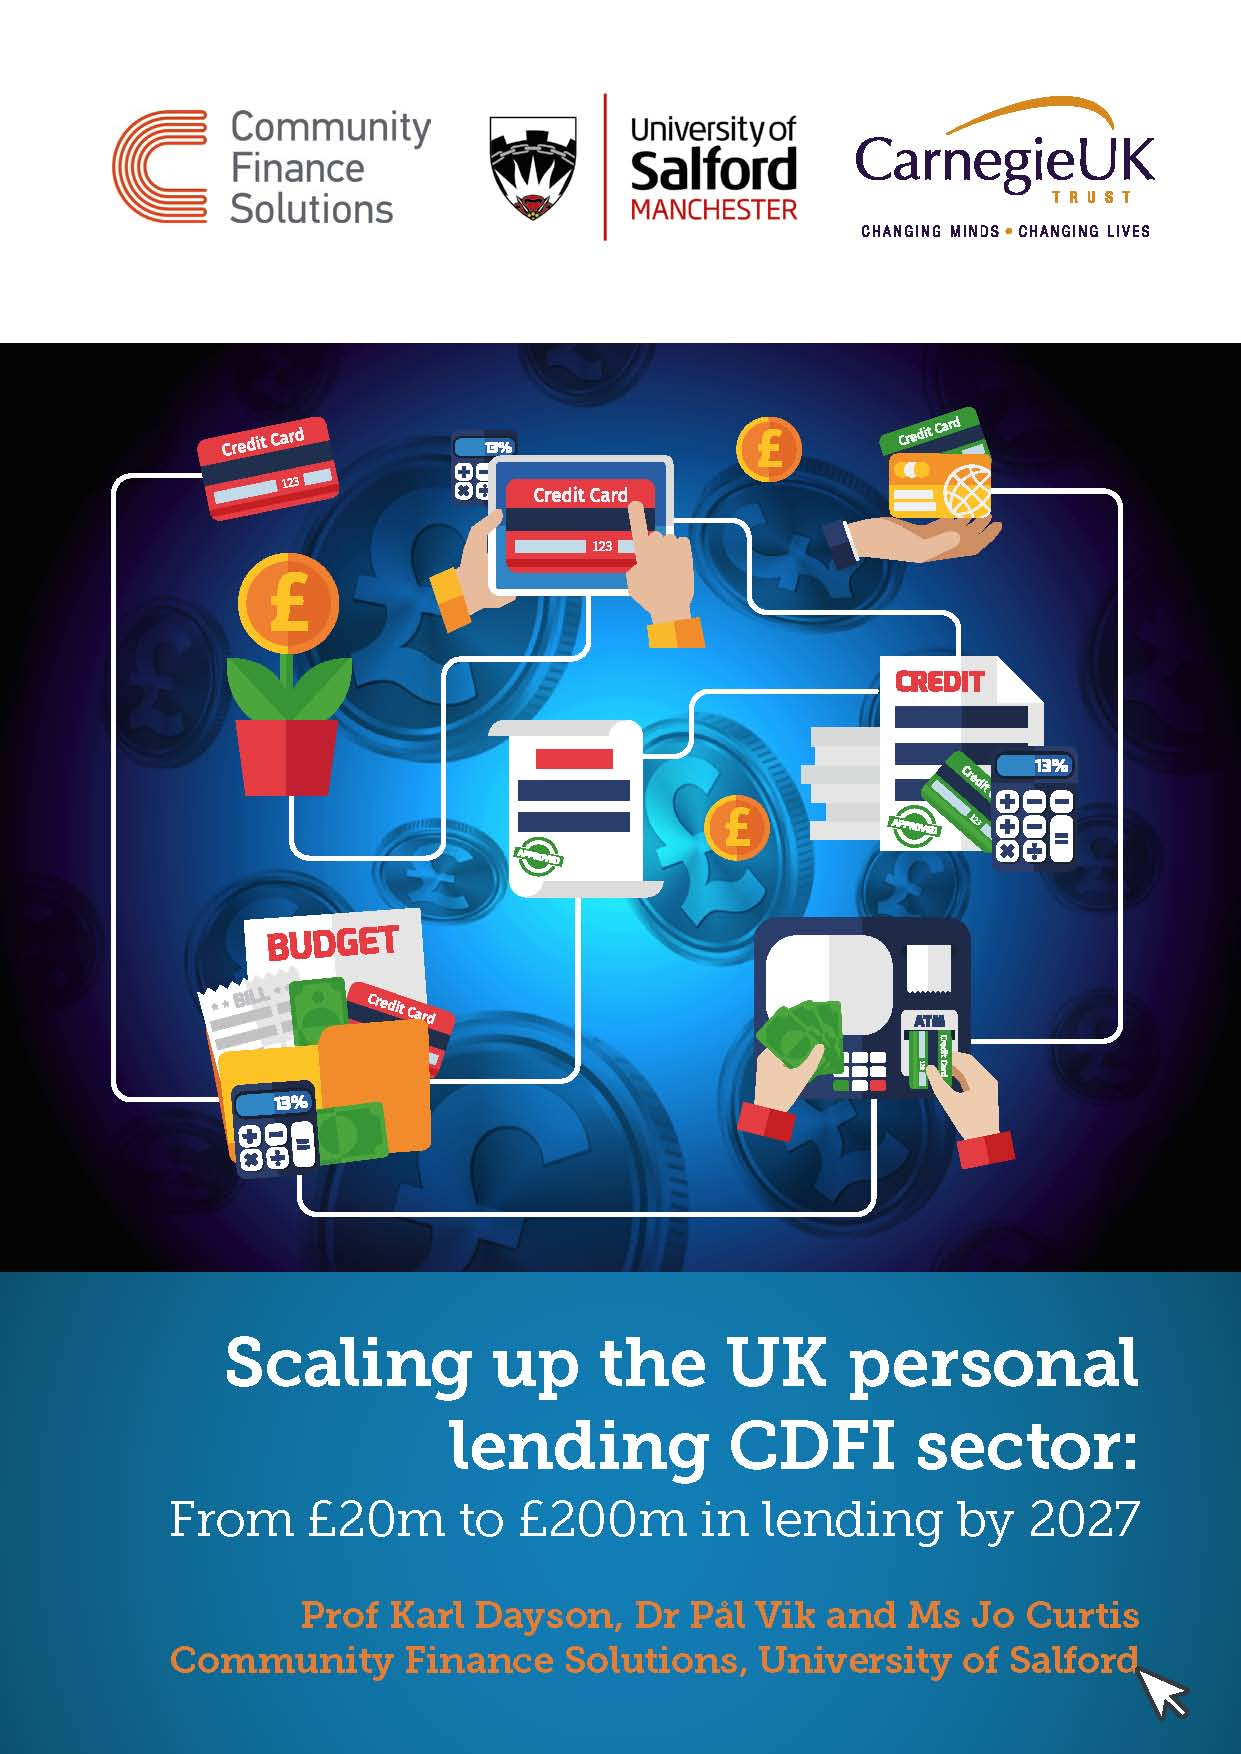 Scaling up the UK personal lending CDFI sector: From £20m to £200m in lending by 2027